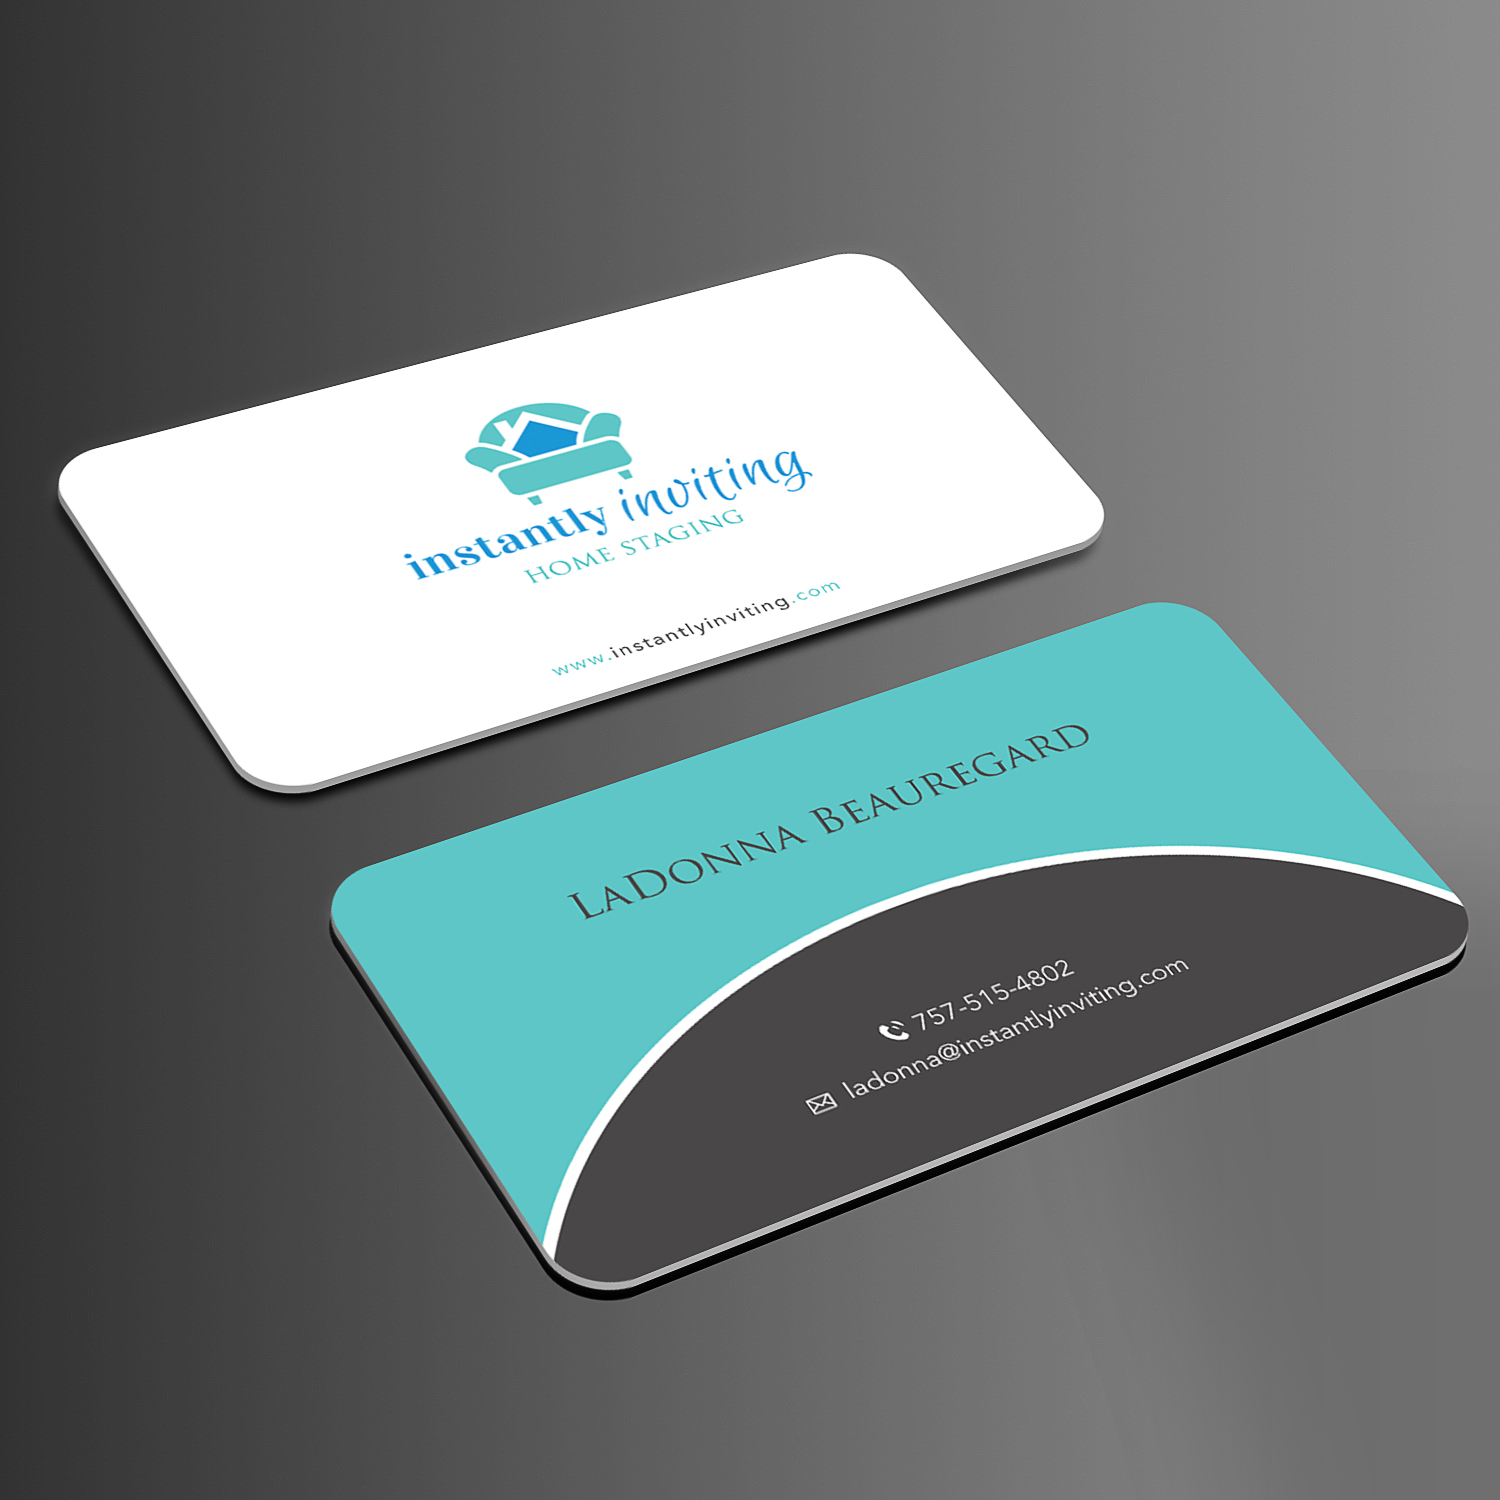 Business Card Design By Sandymanme For Instantly Inviting Home Staging Solutions